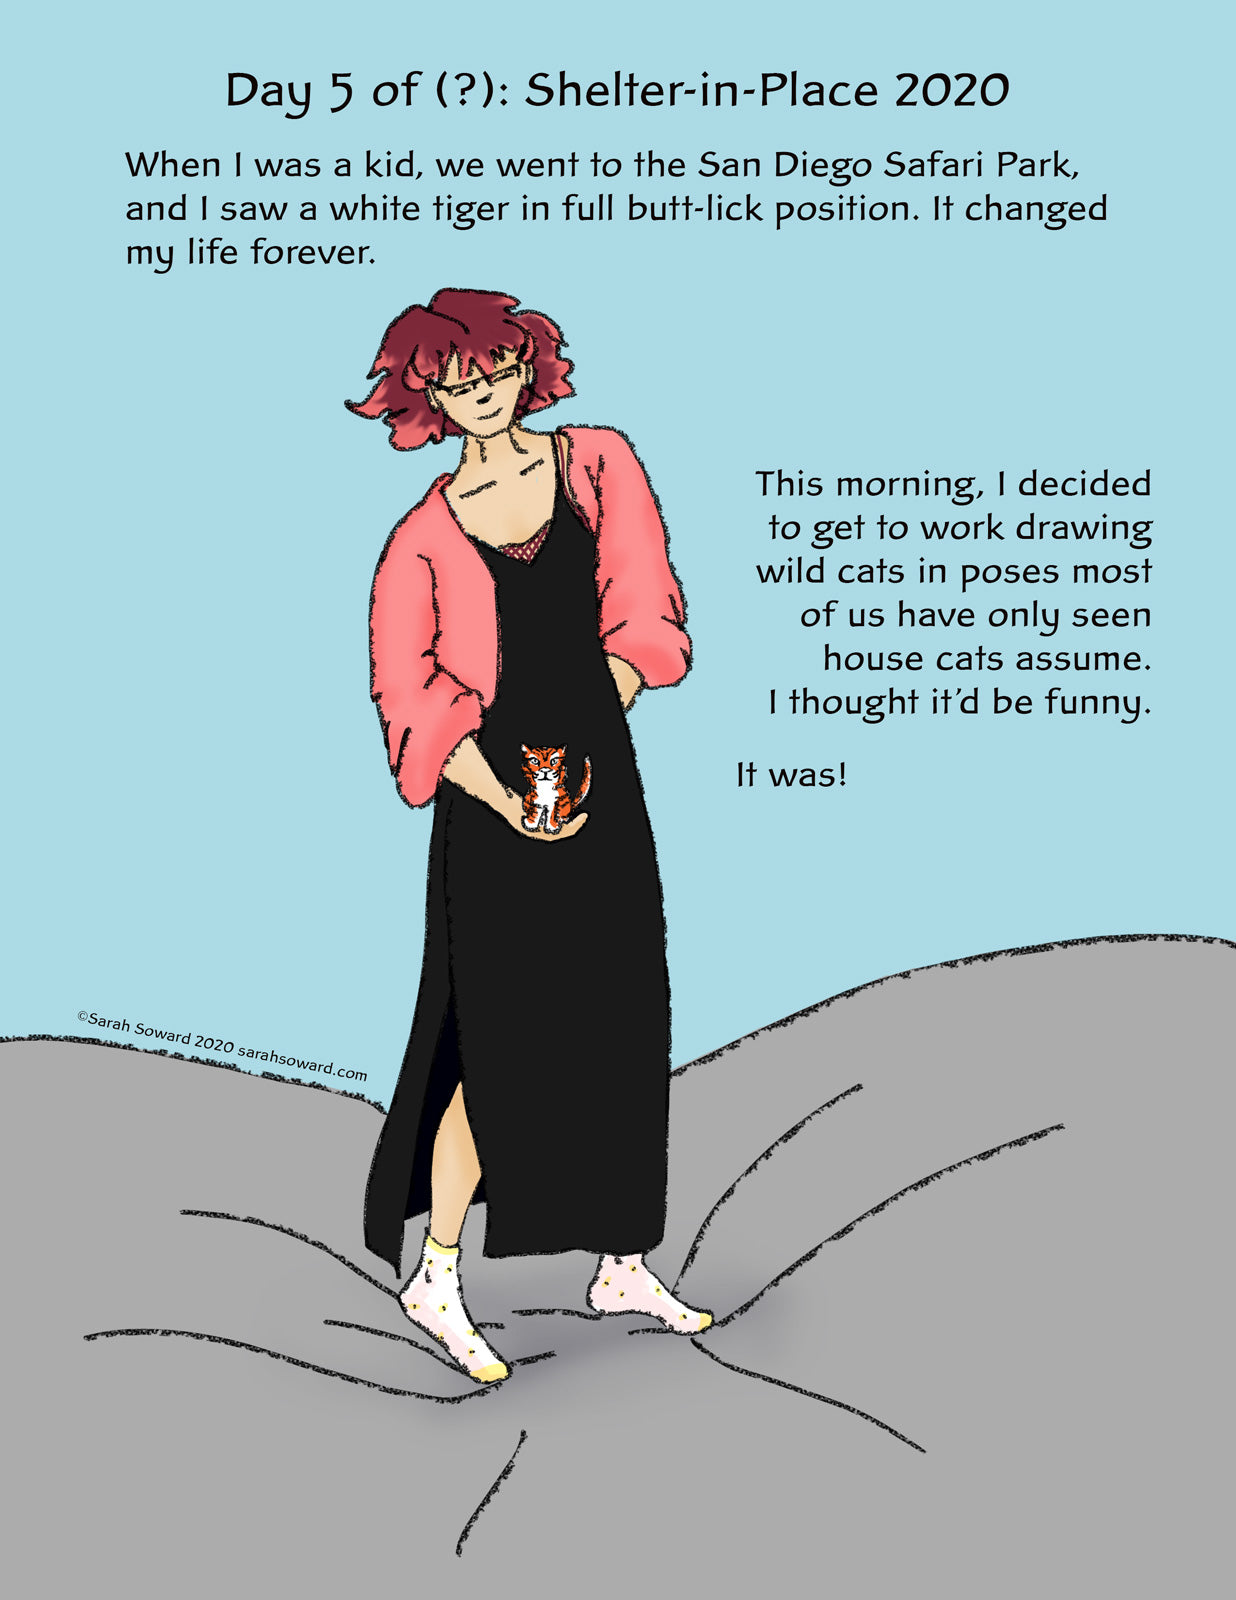 The image is of a woman in a black dress and pink sweater holding a very small tiger. The text on the image reads, When I was a kid, we went to the San Diego Safari Park, and I saw a white tiger in full butt-lick position. It changed my life forever. This morning, I decided to get to work drawing wild cats in poses most of us have only seen house cats assume. I thought it'd be funny. It was!